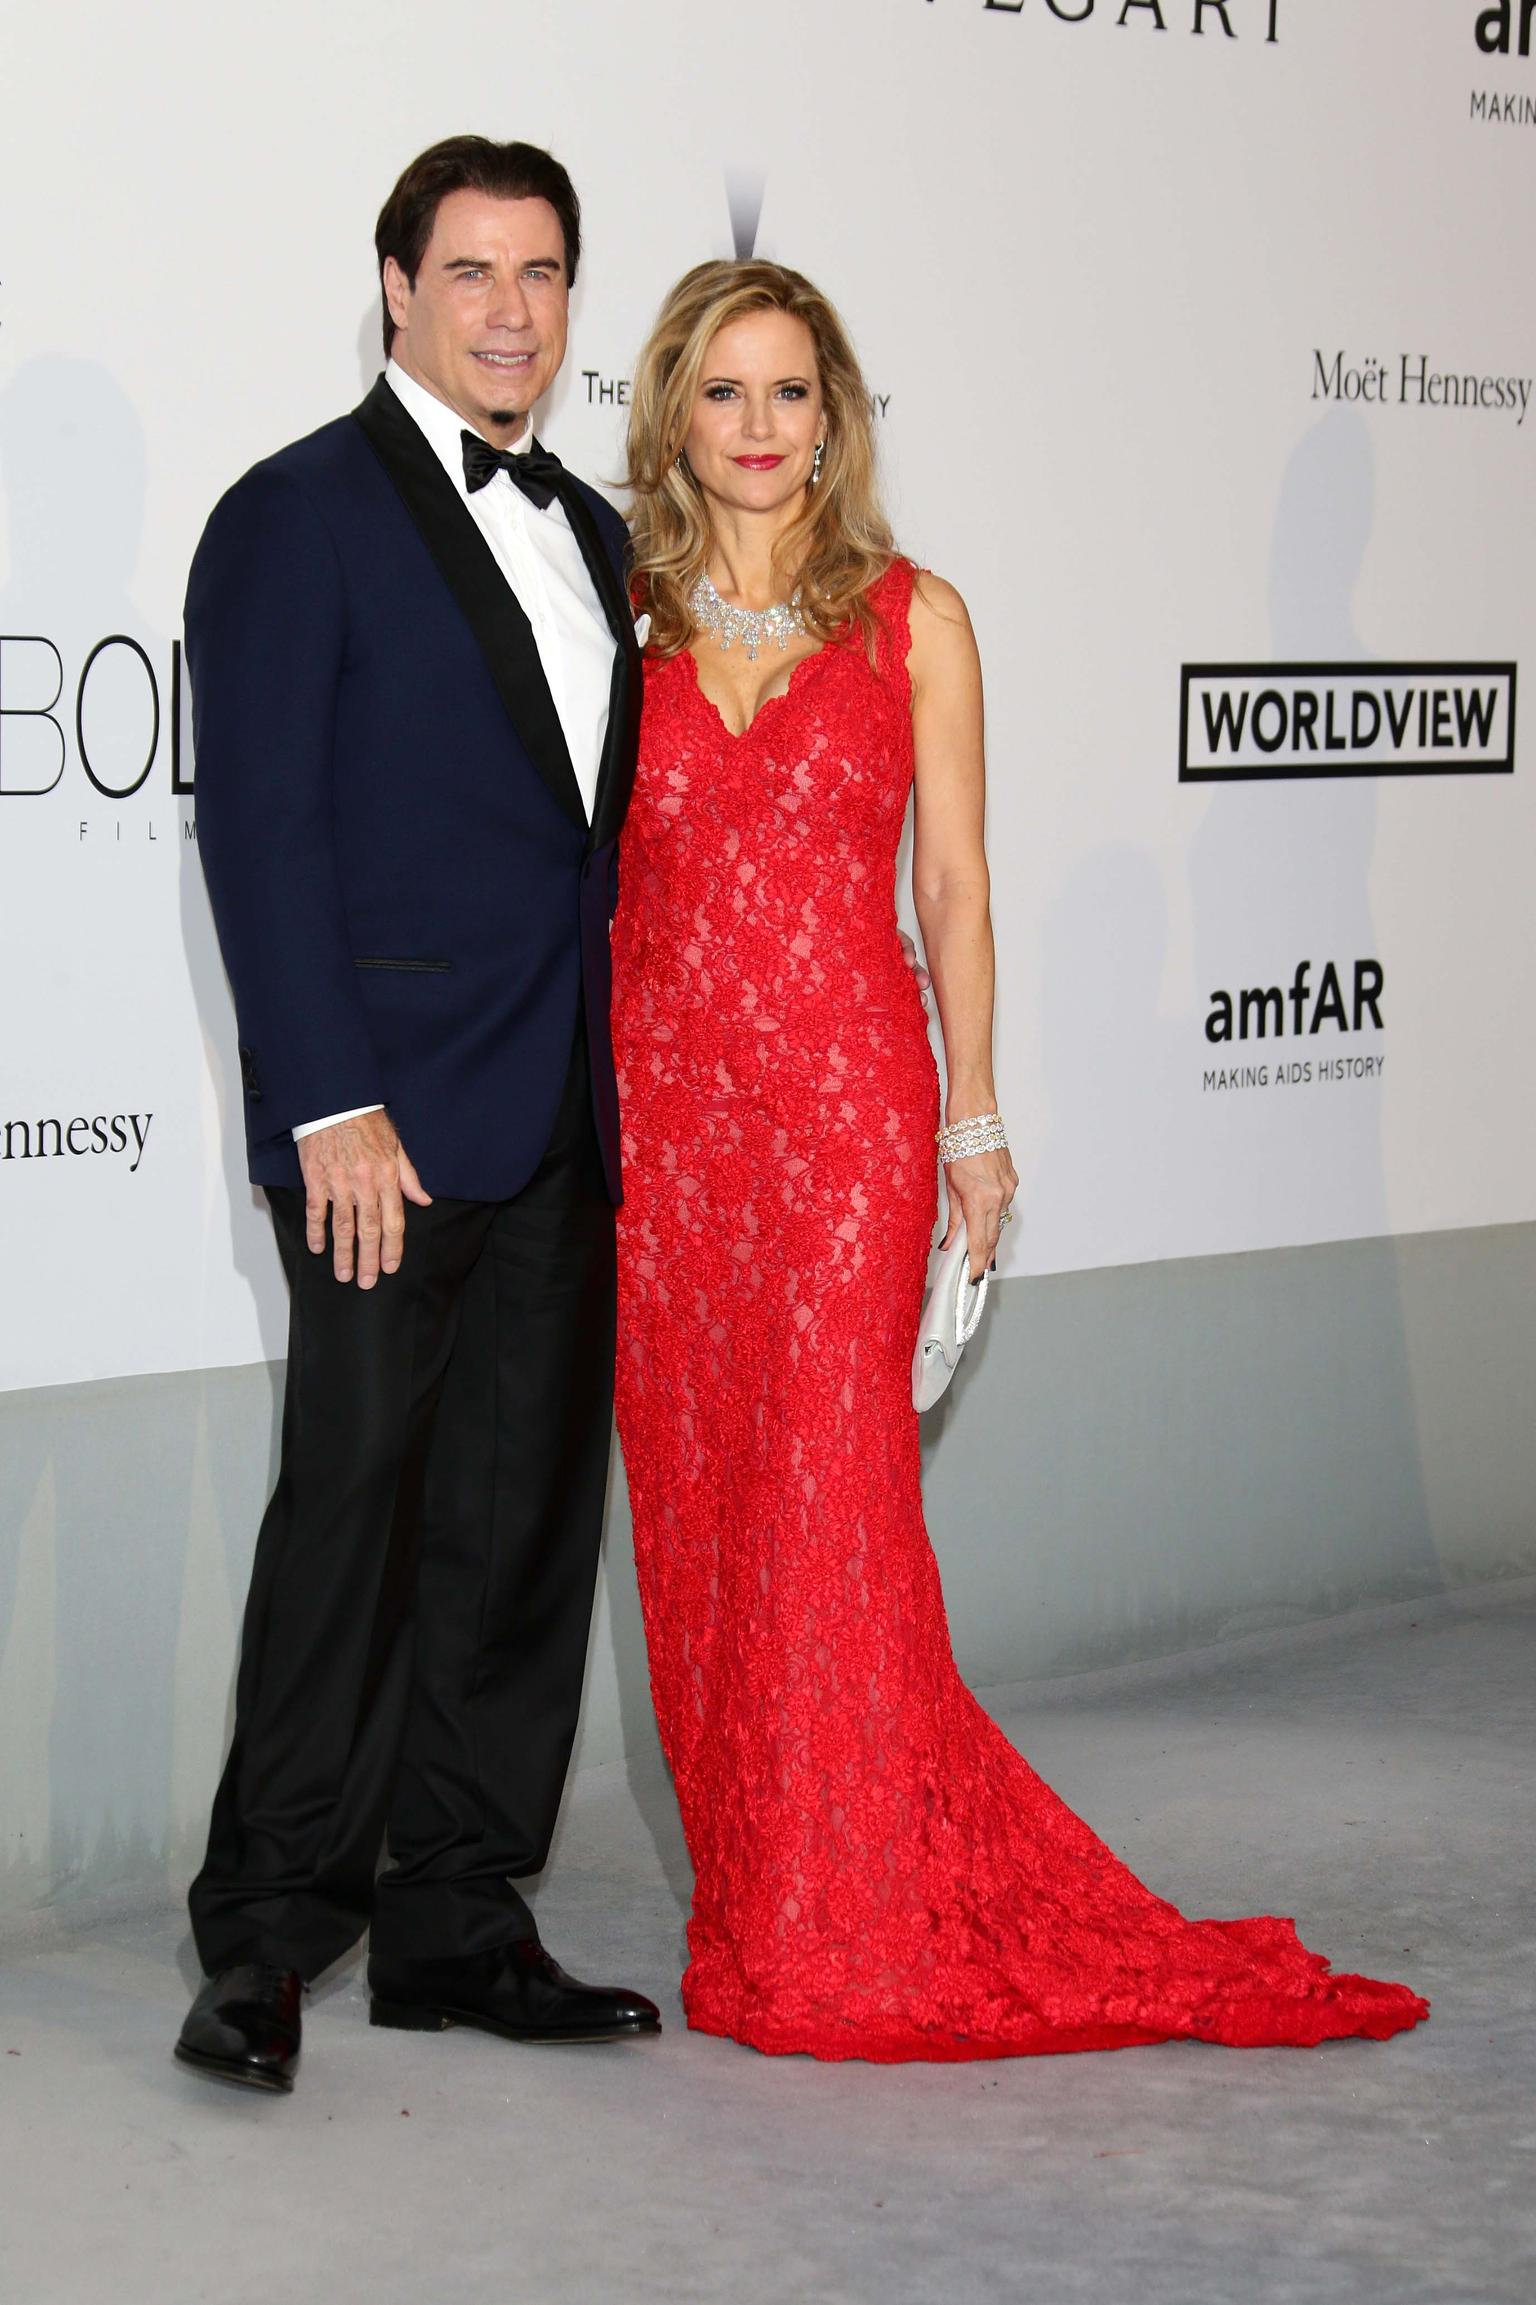 Kelly Preston chose a spectacular white diamond necklace set with a total of 150cts of diamonds, stackable bracelets with 80cts of diamonds and long diamond earrings by Avakian